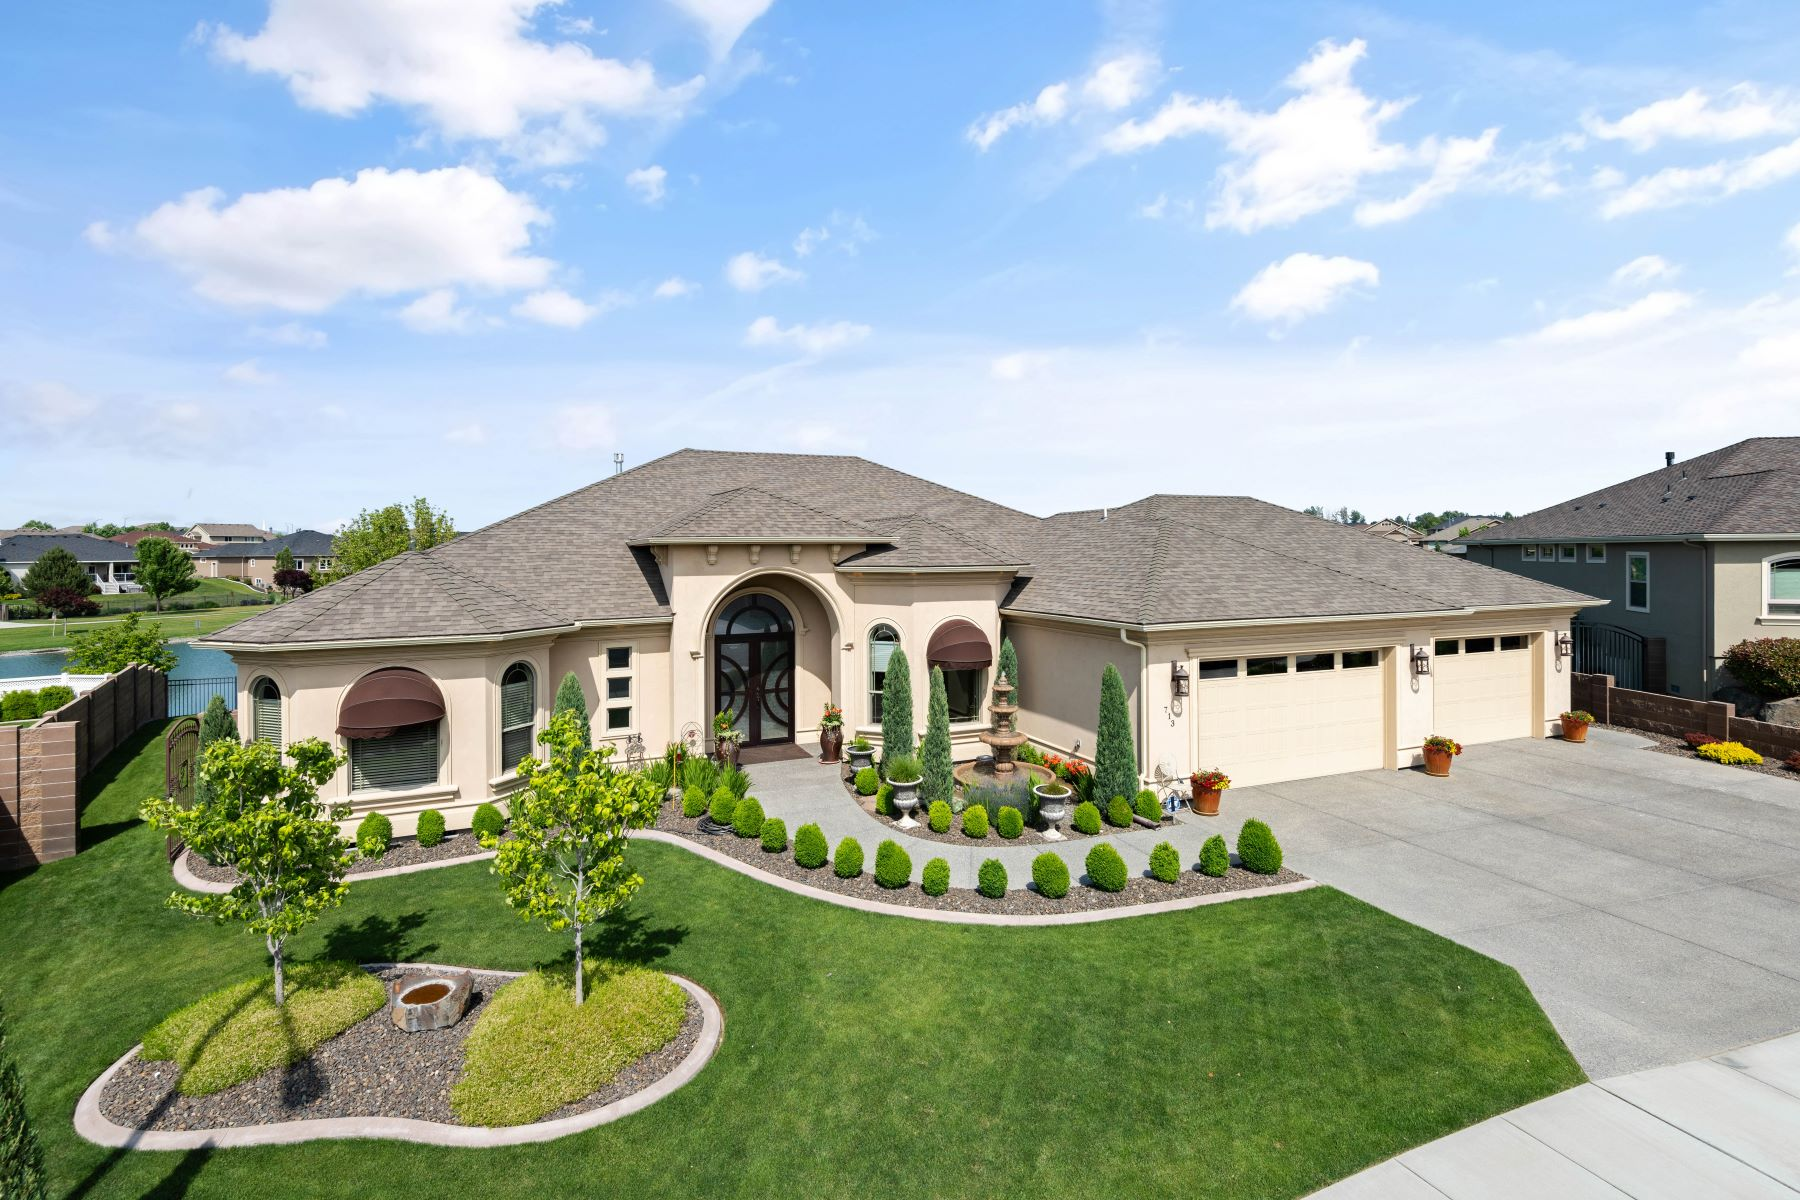 Single Family Homes for Sale at ELEGANCE on The LAKE in HANSEN PARK! 713 Idaho Place Kennewick, Washington 99336 United States